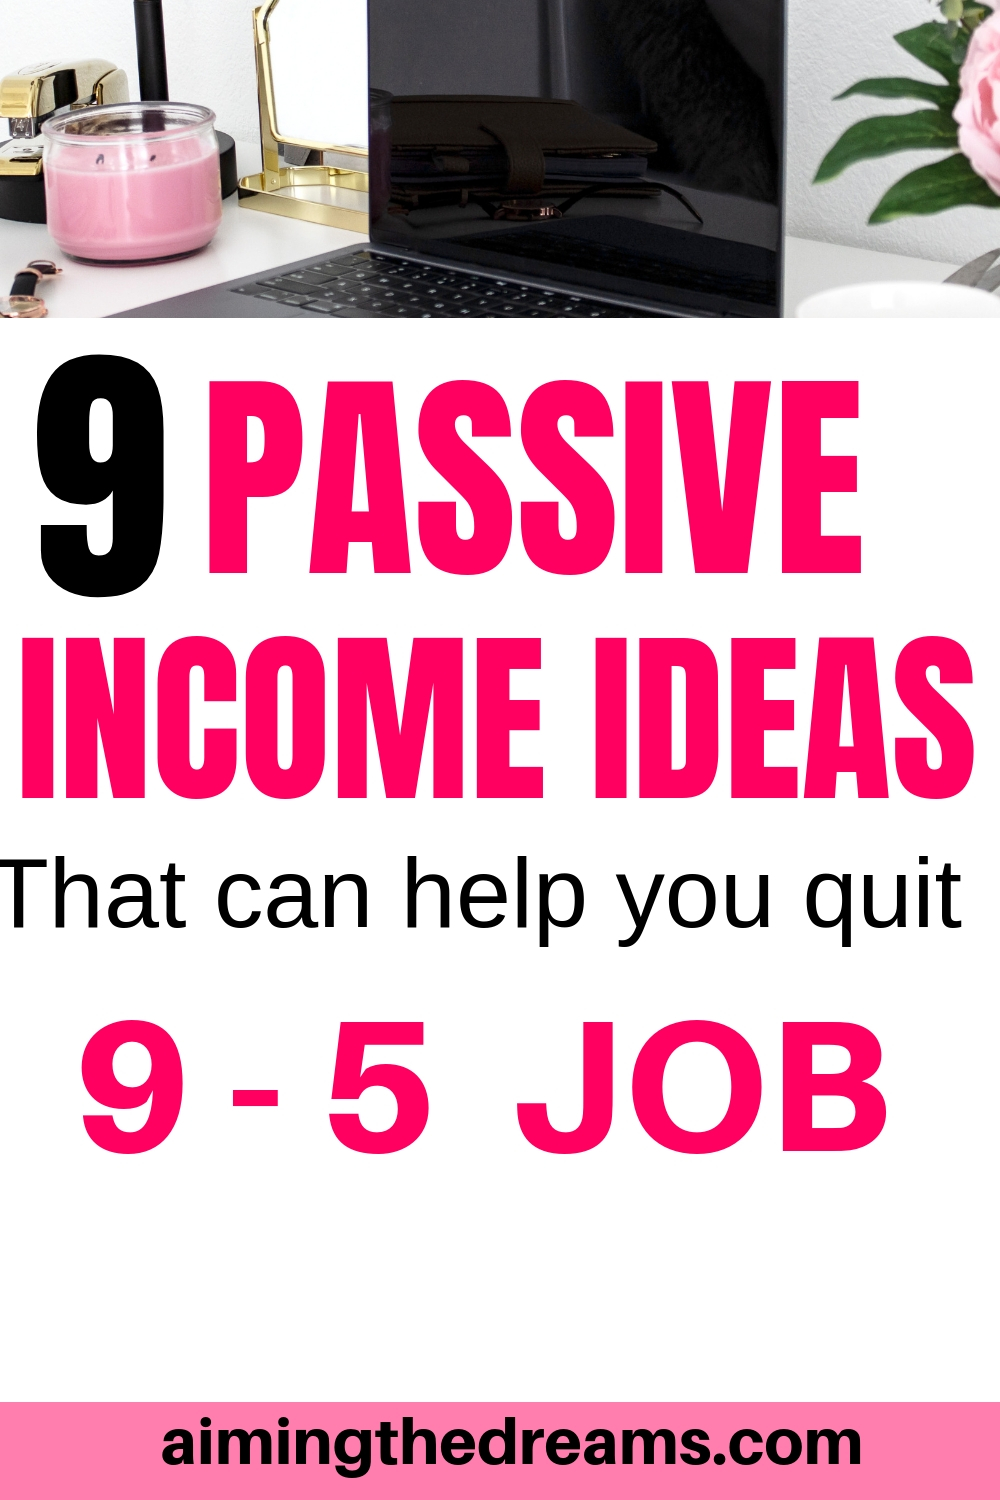 9 passive income ideas that can help you quit 9-5 job.